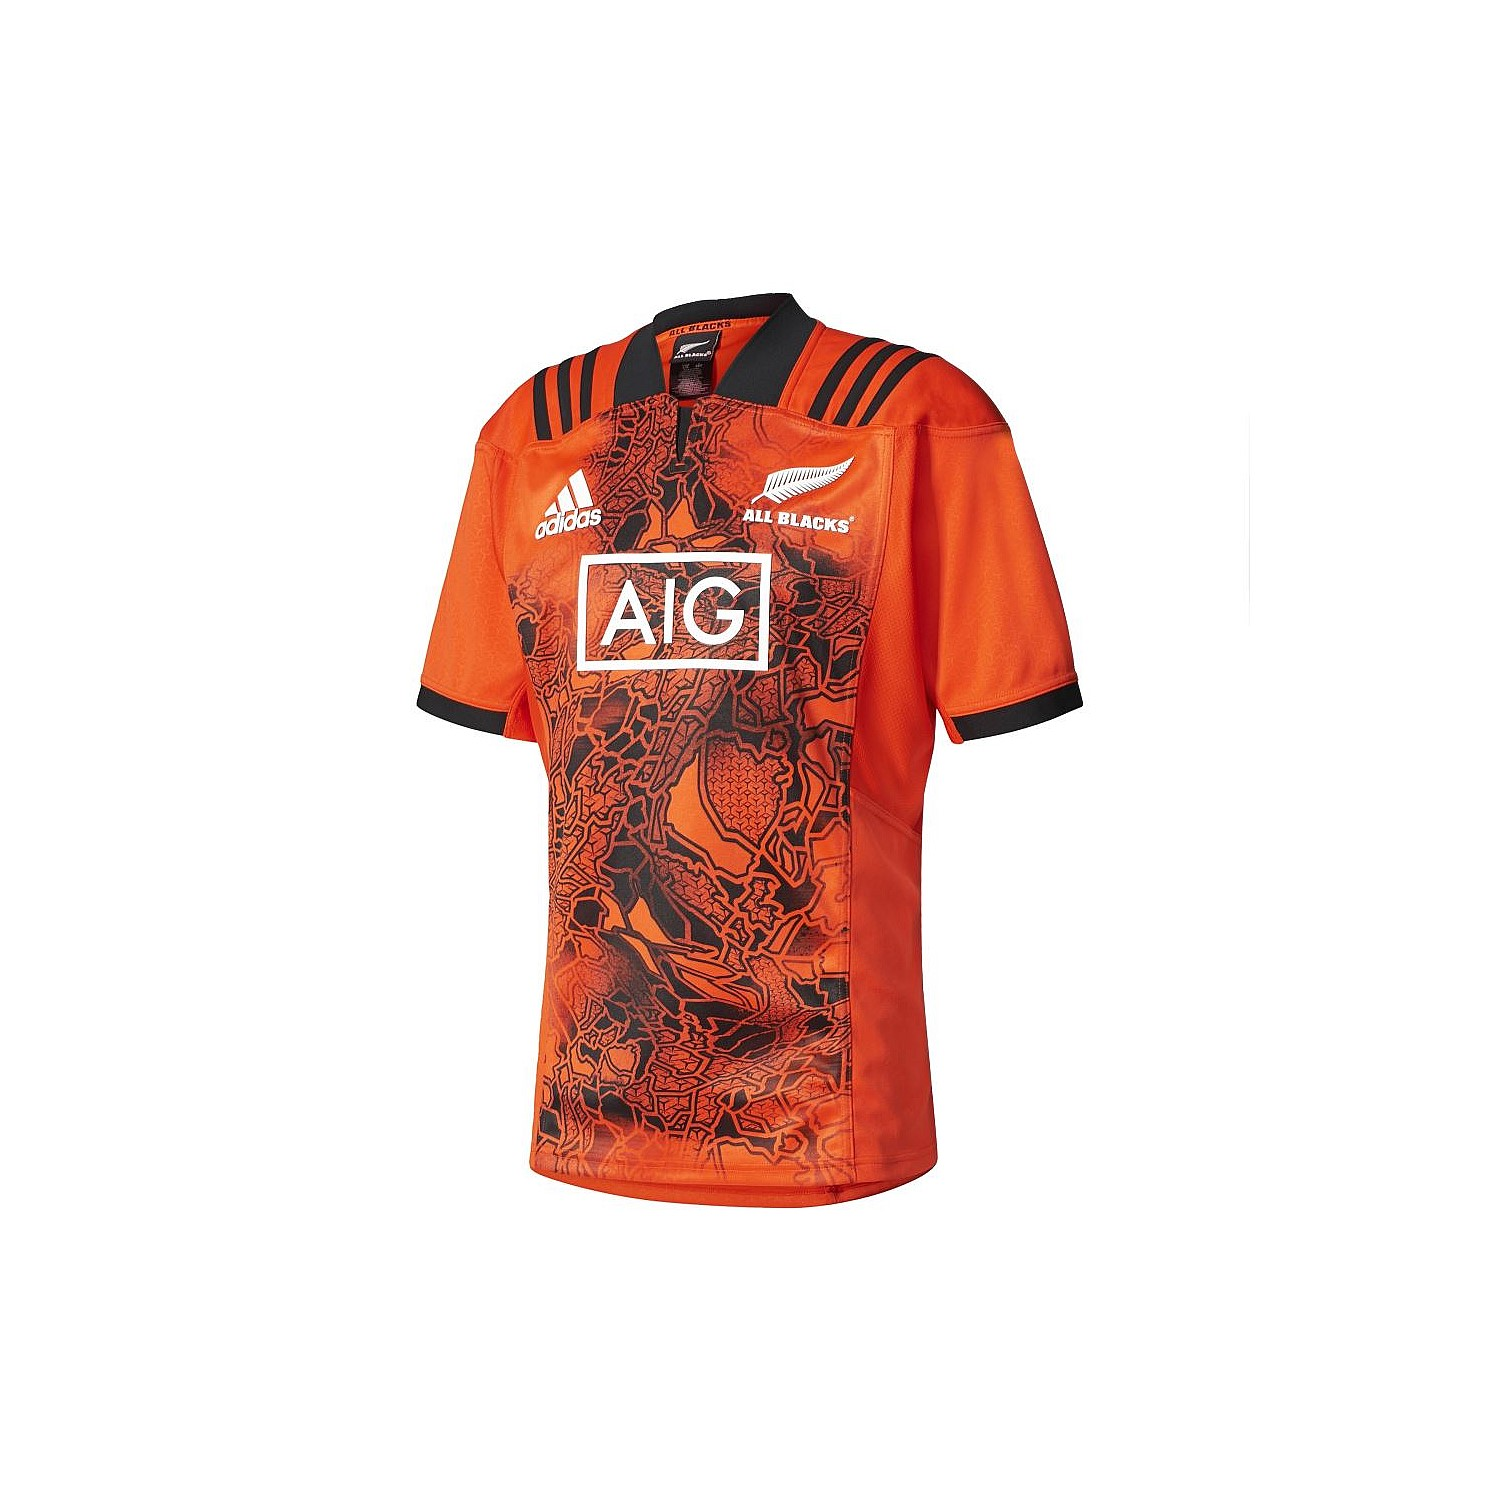 48a1a62ef08 Rugby | Rugby Supporter Gear and Accessories Online | Stirling Sports - All  Blacks Training Jersey